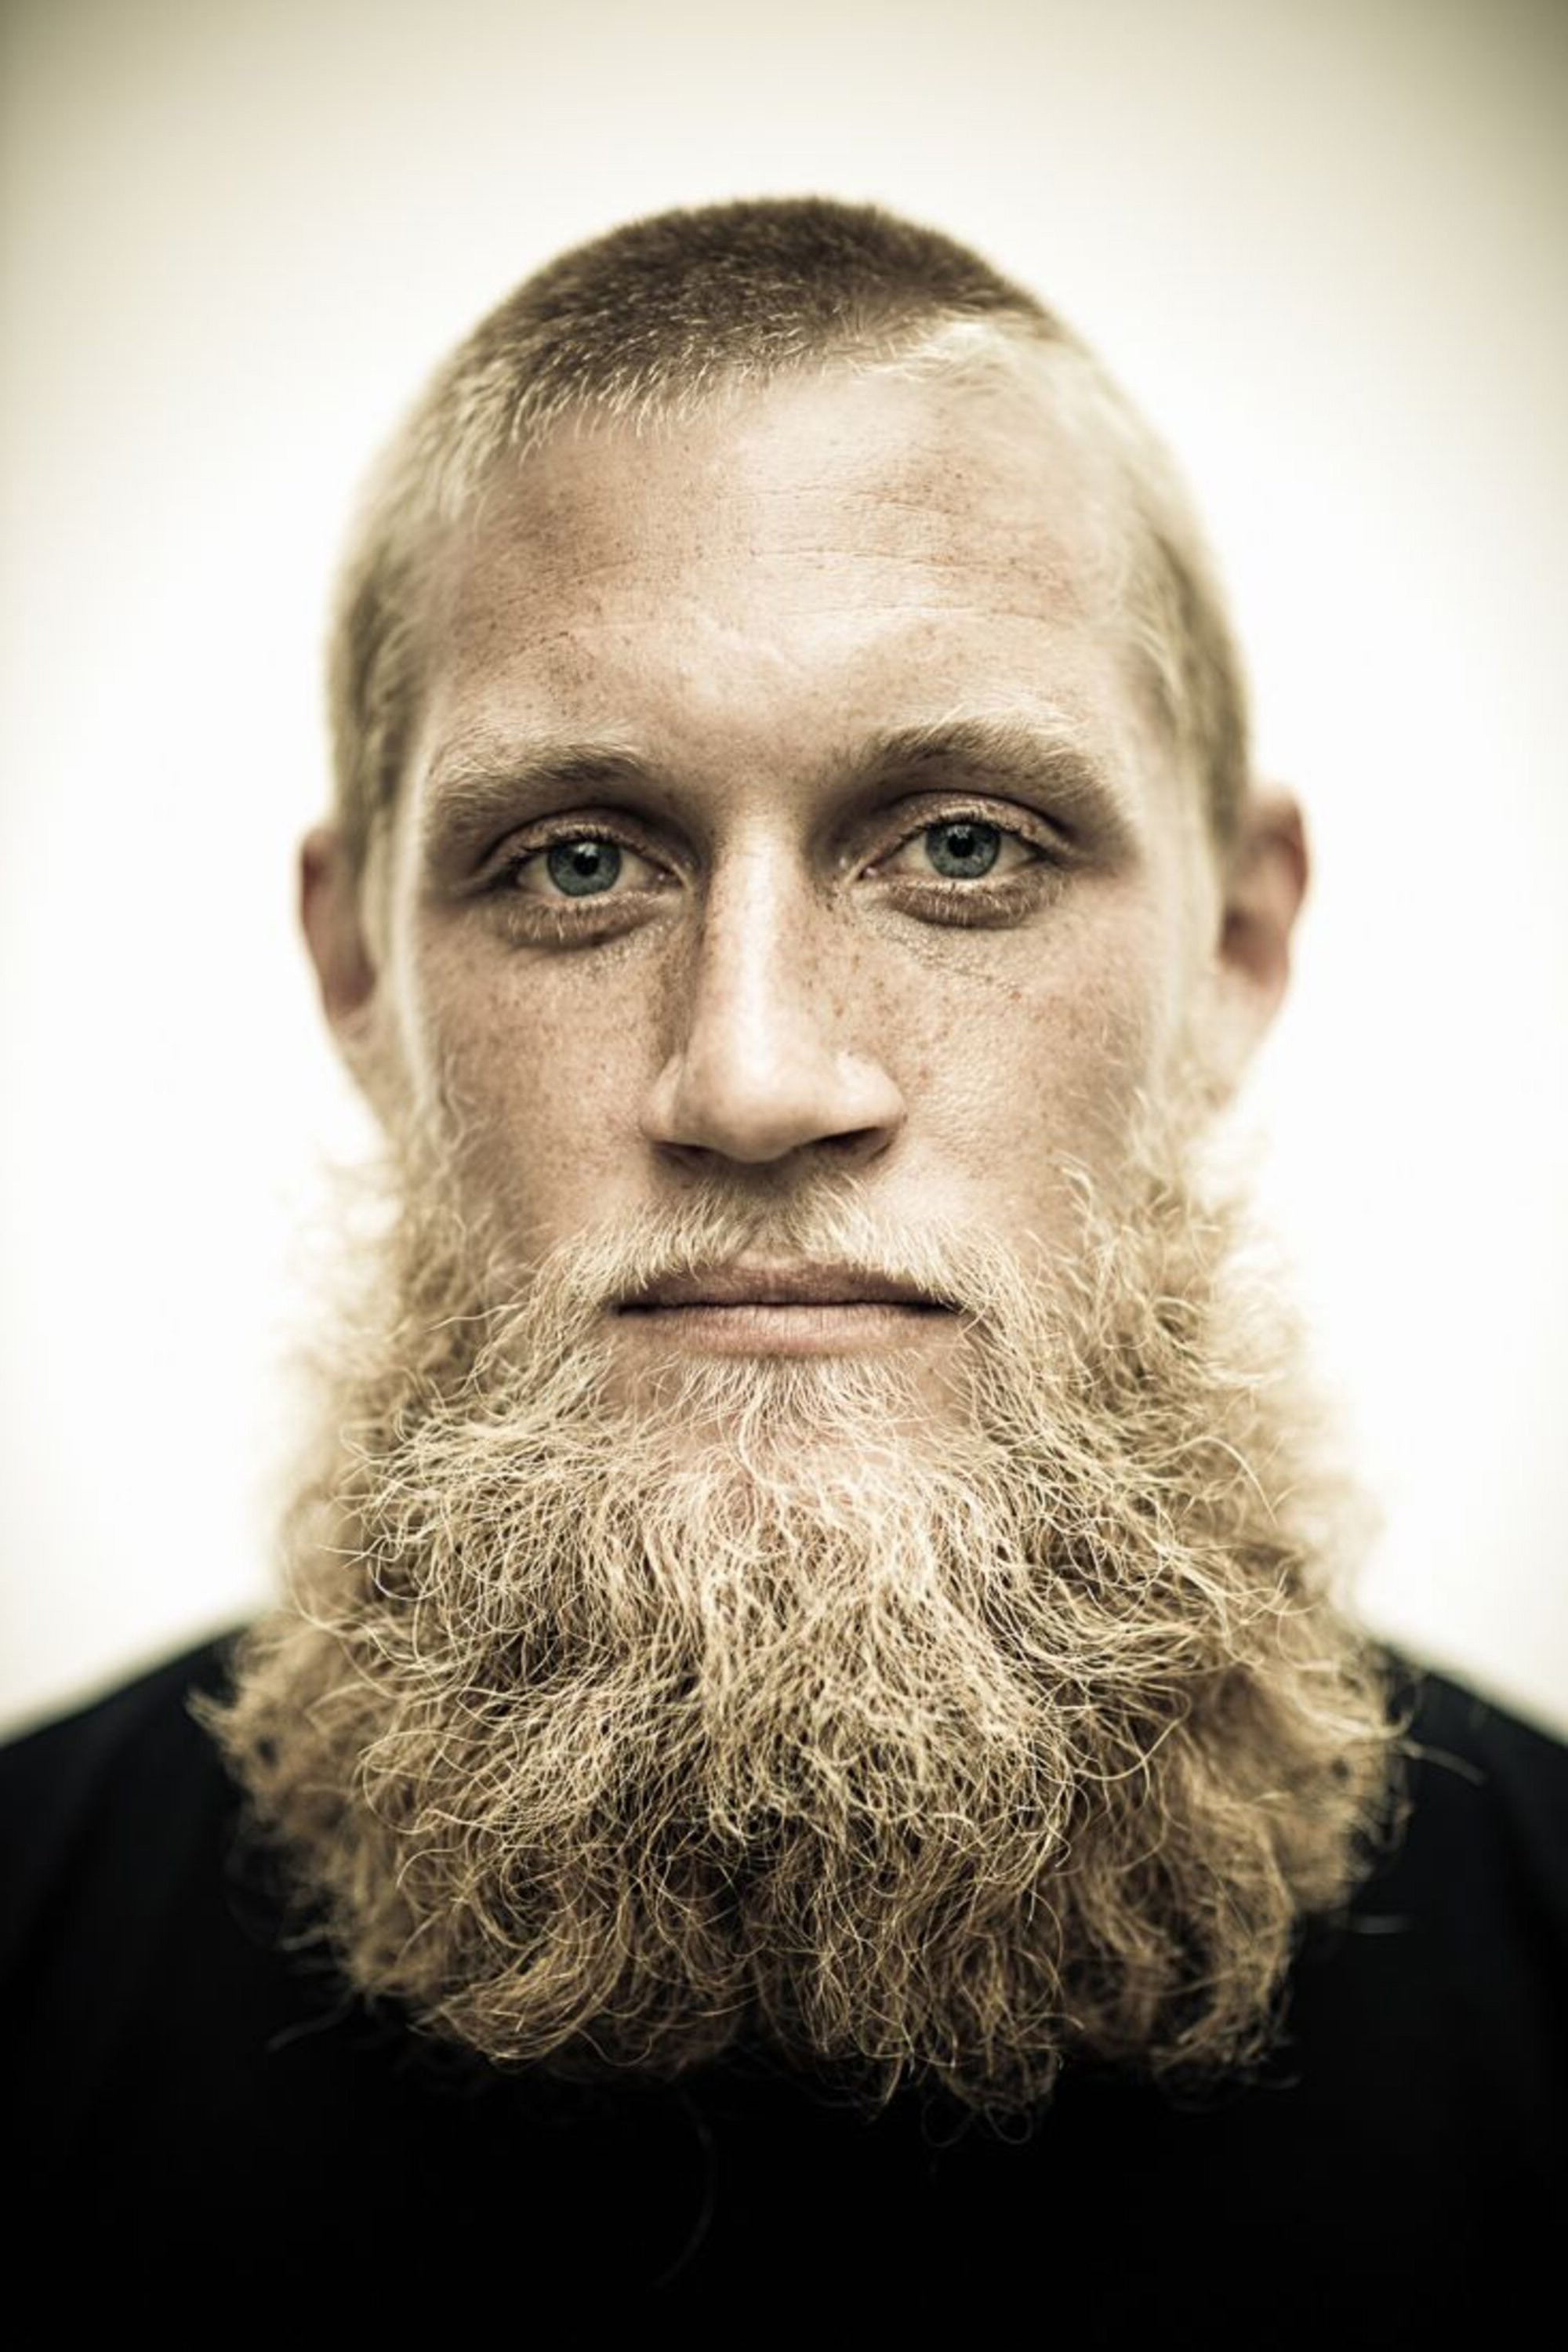 A full beard for men with blonde hair.